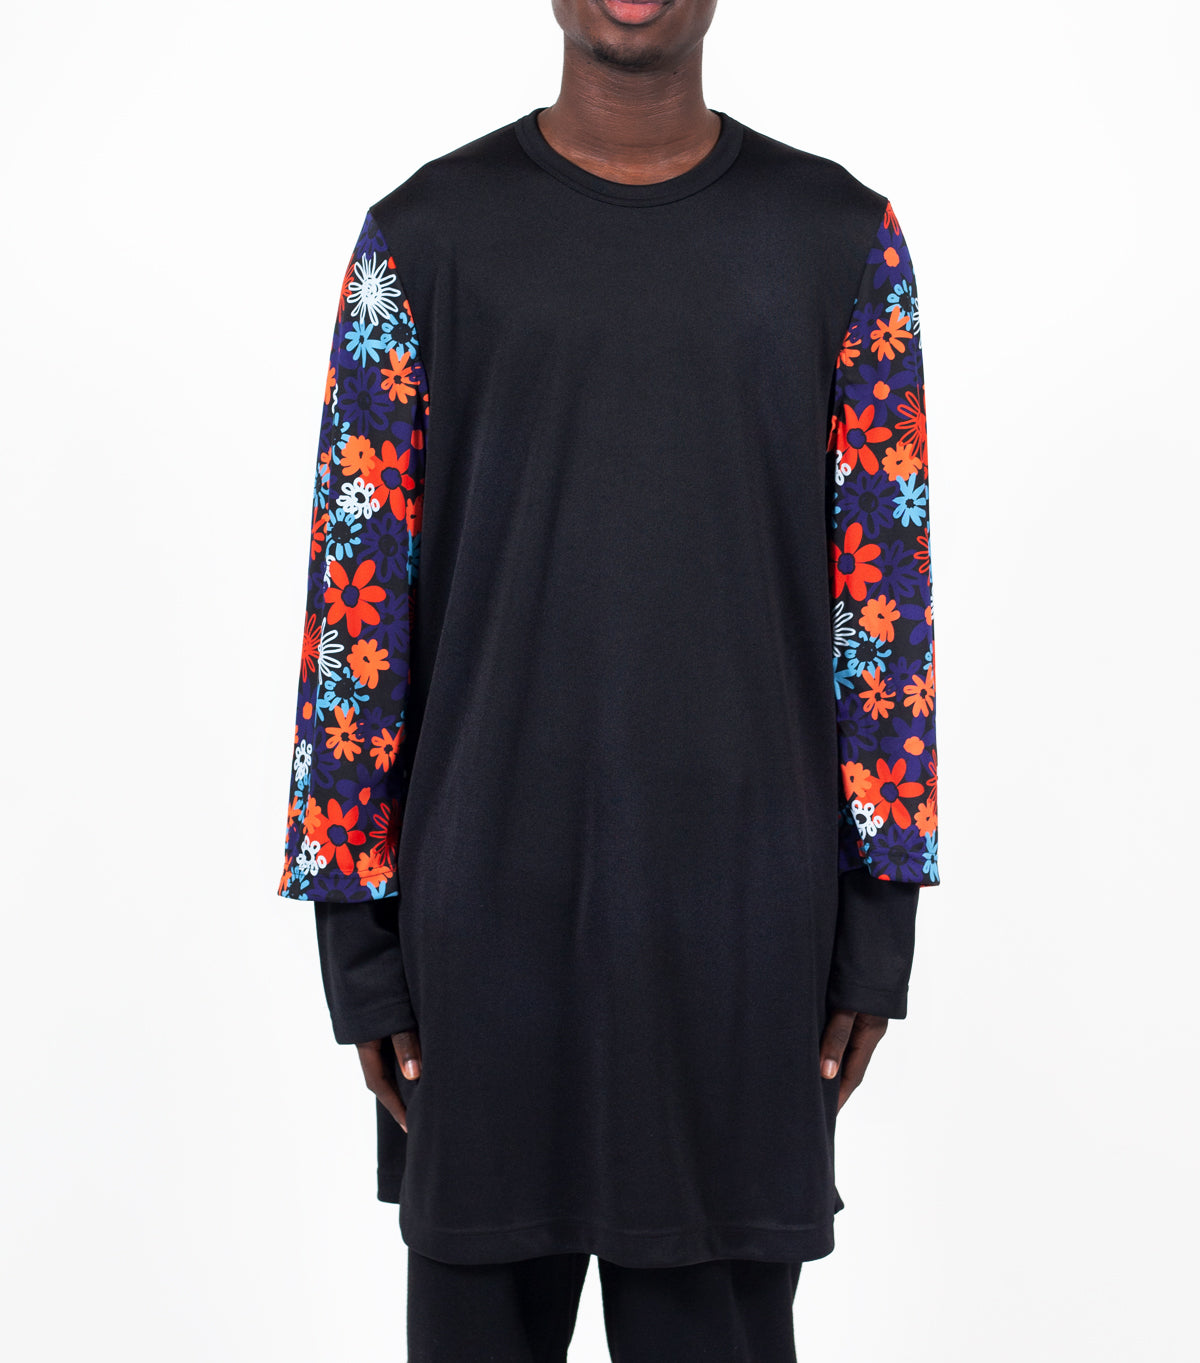 CdG Homme Plus Long Sleeve T-Shirt Multi Color